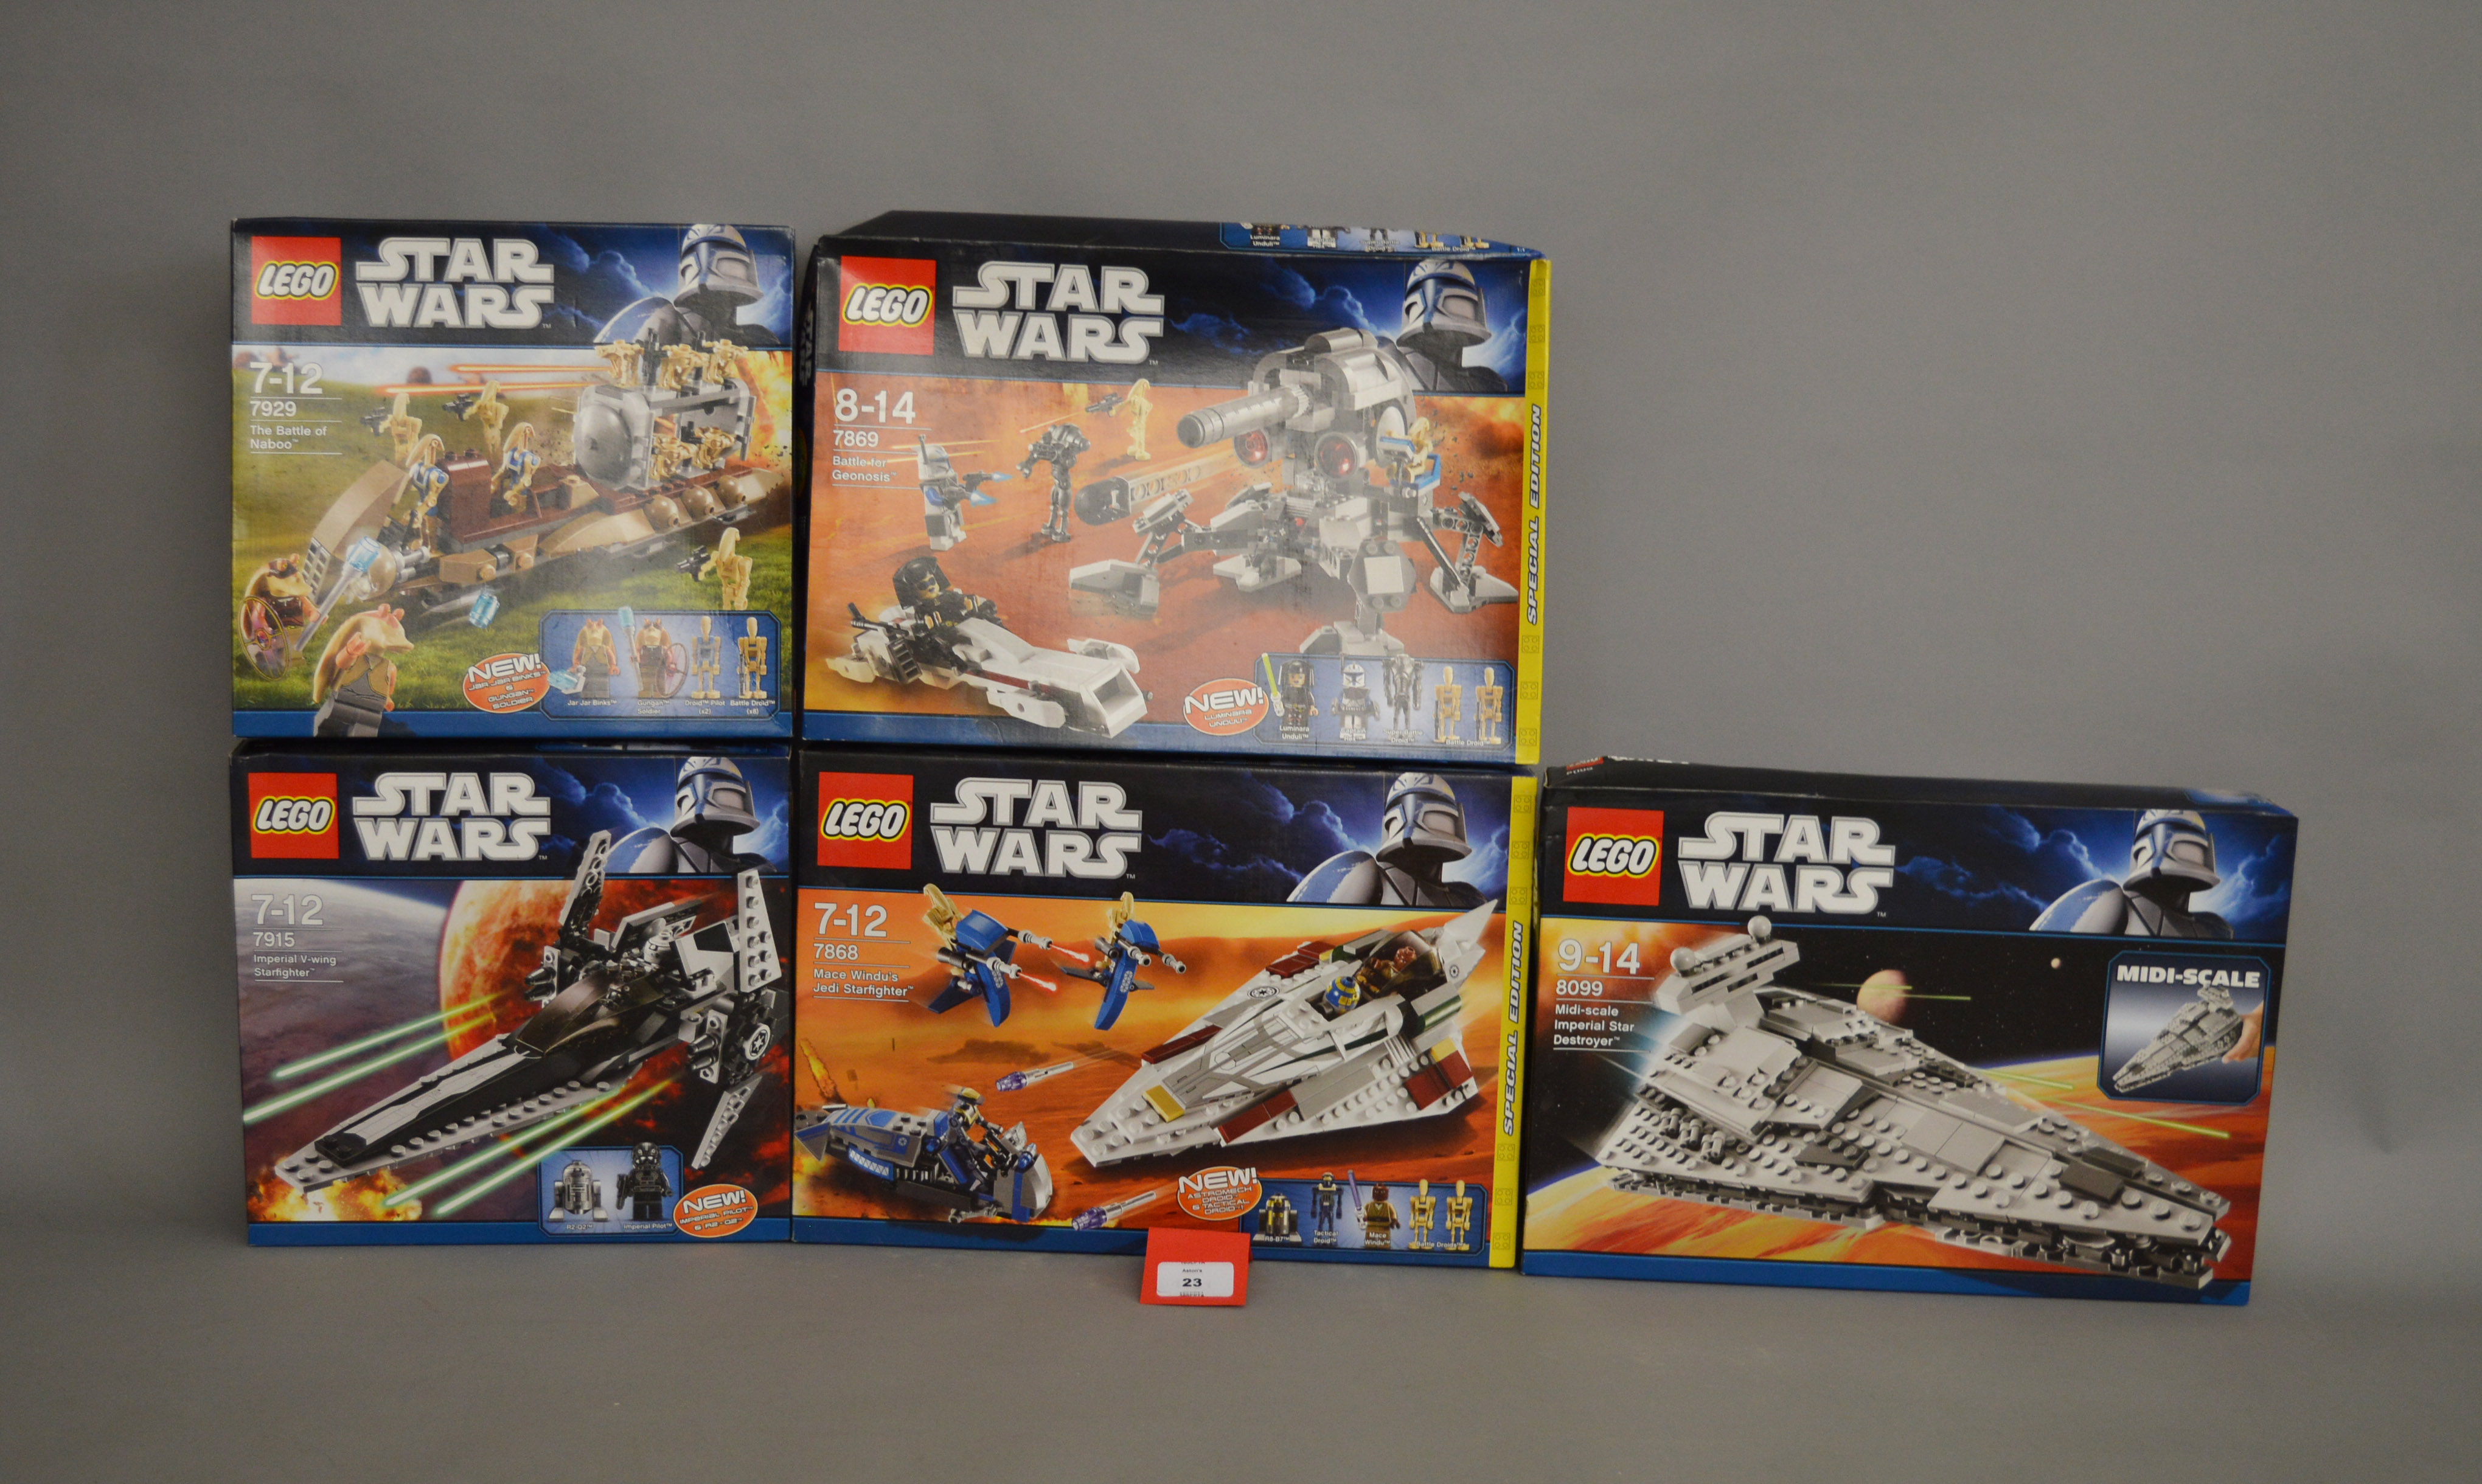 Lot 23 - Five Lego Star Wars sets: 8099 Midi-scale Imperial Star Destroyer; 7869 Battle for Geonosis;